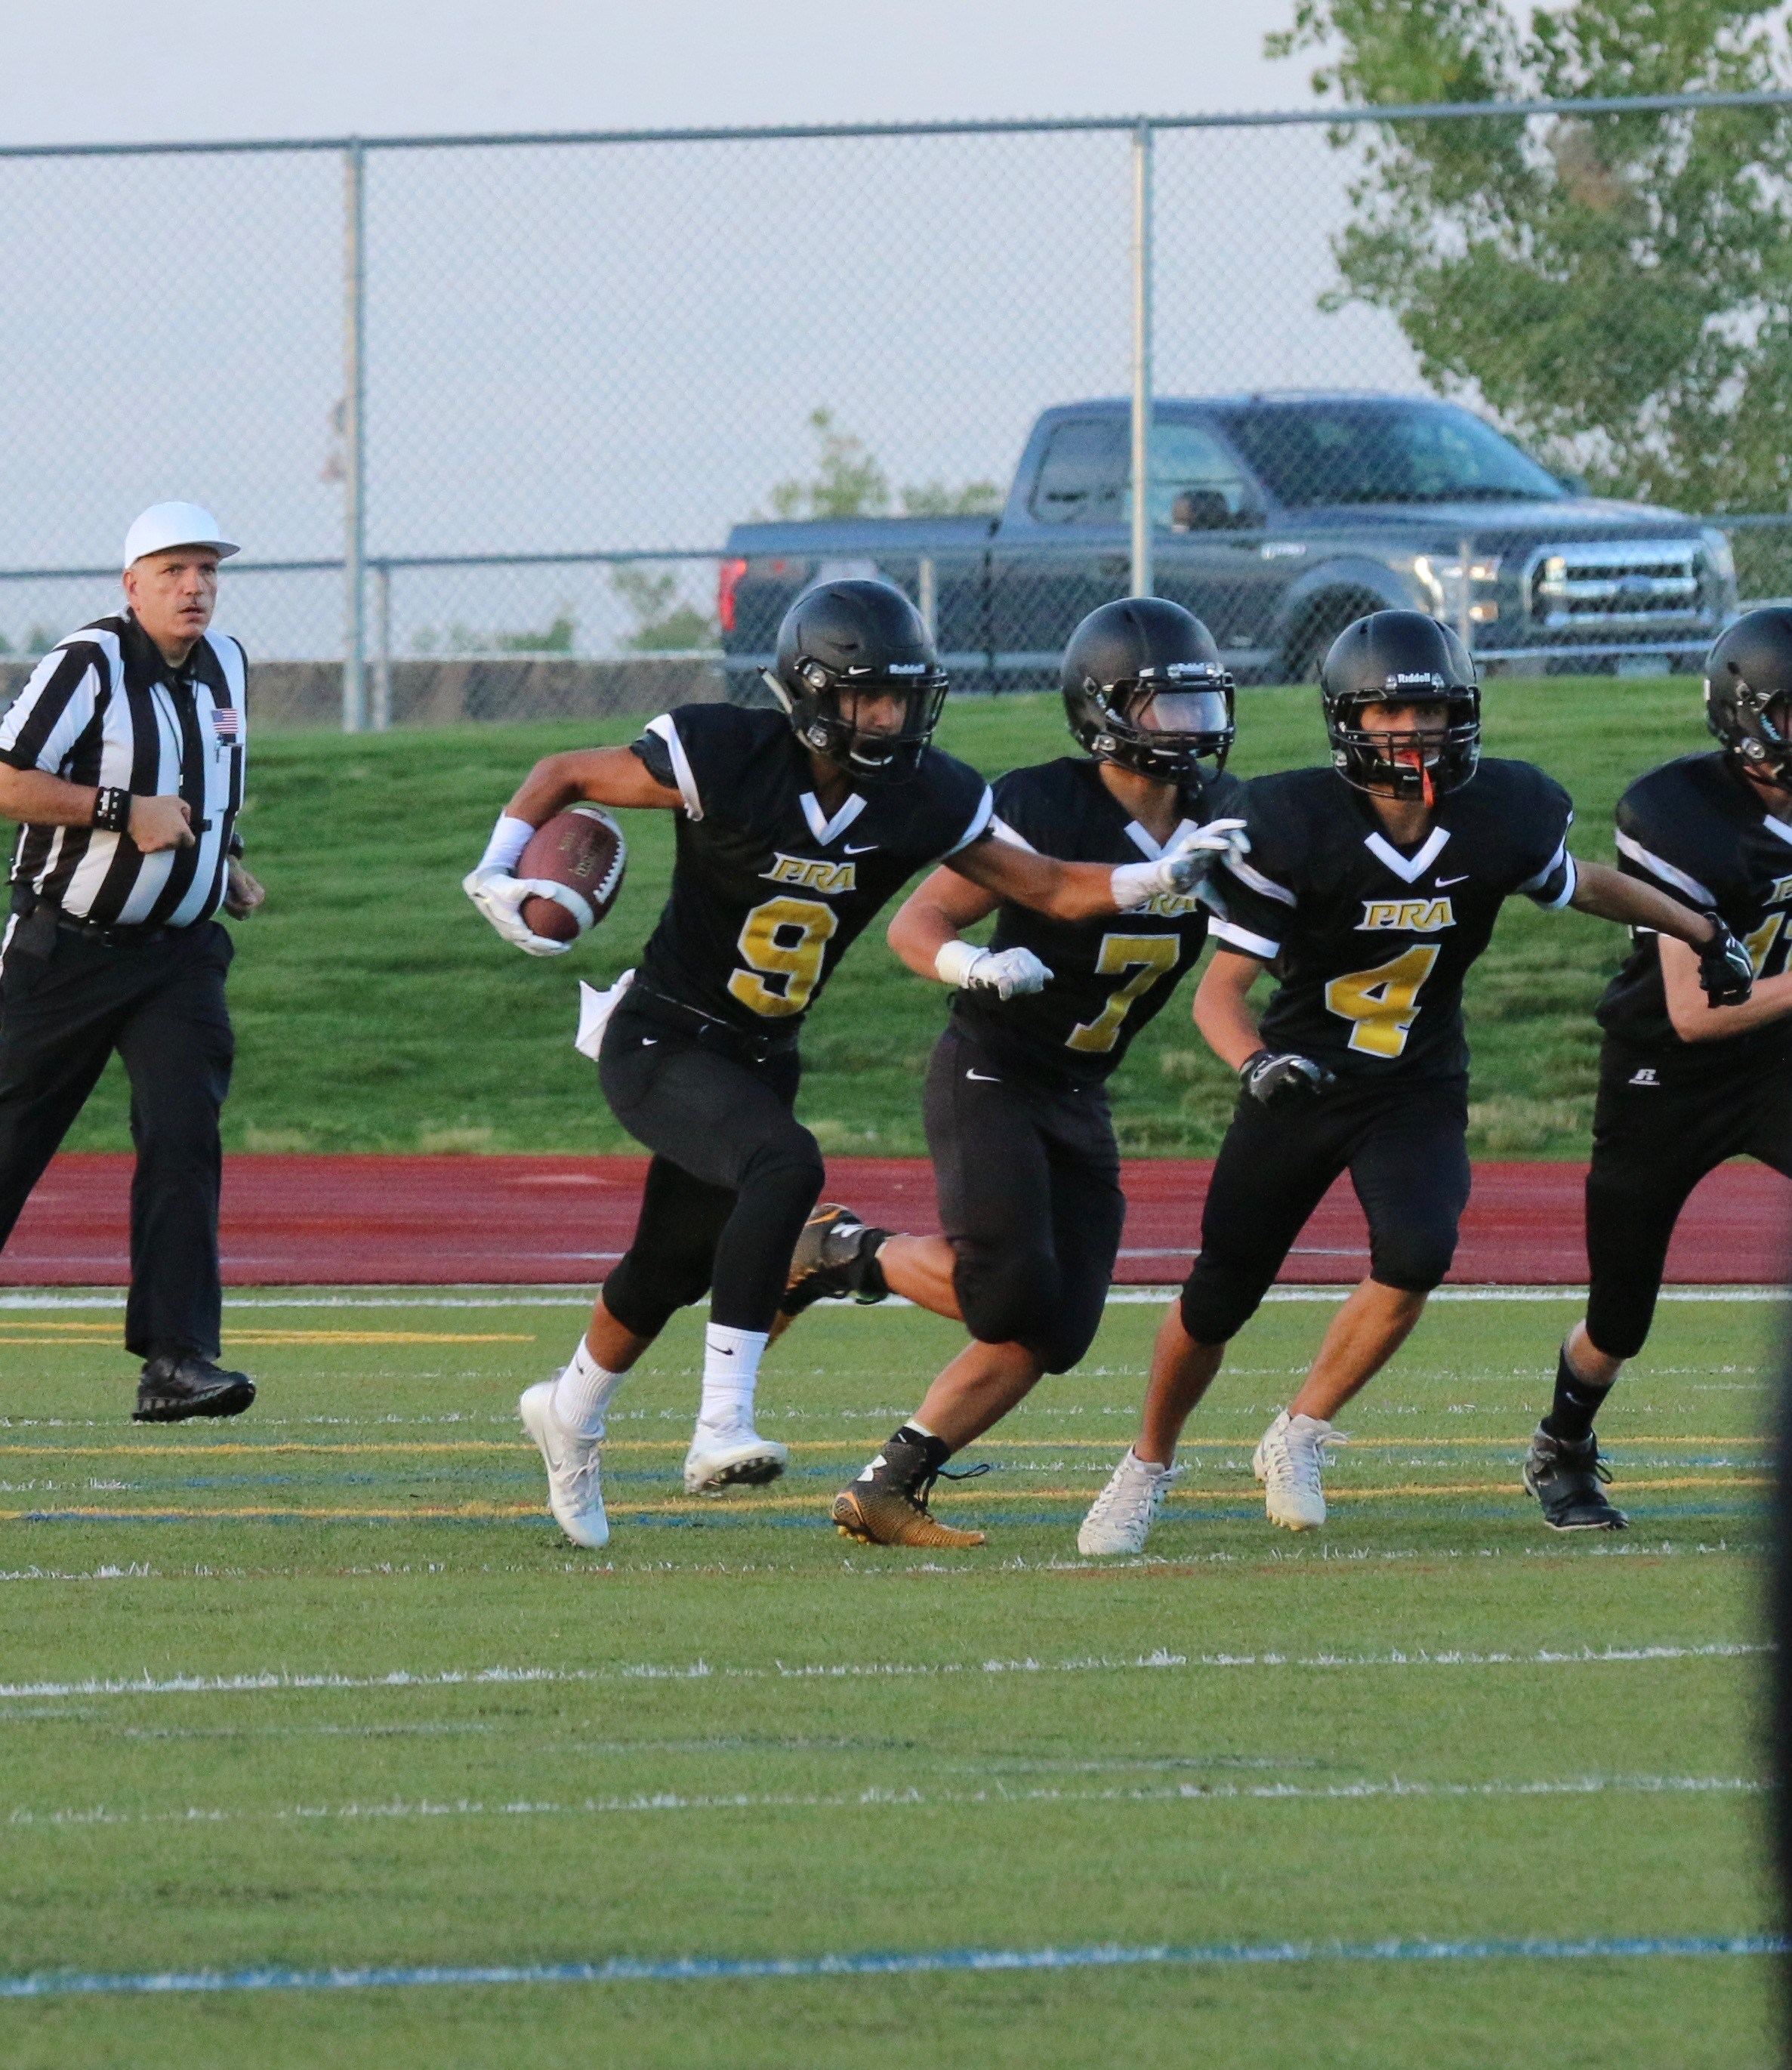 Football team running play